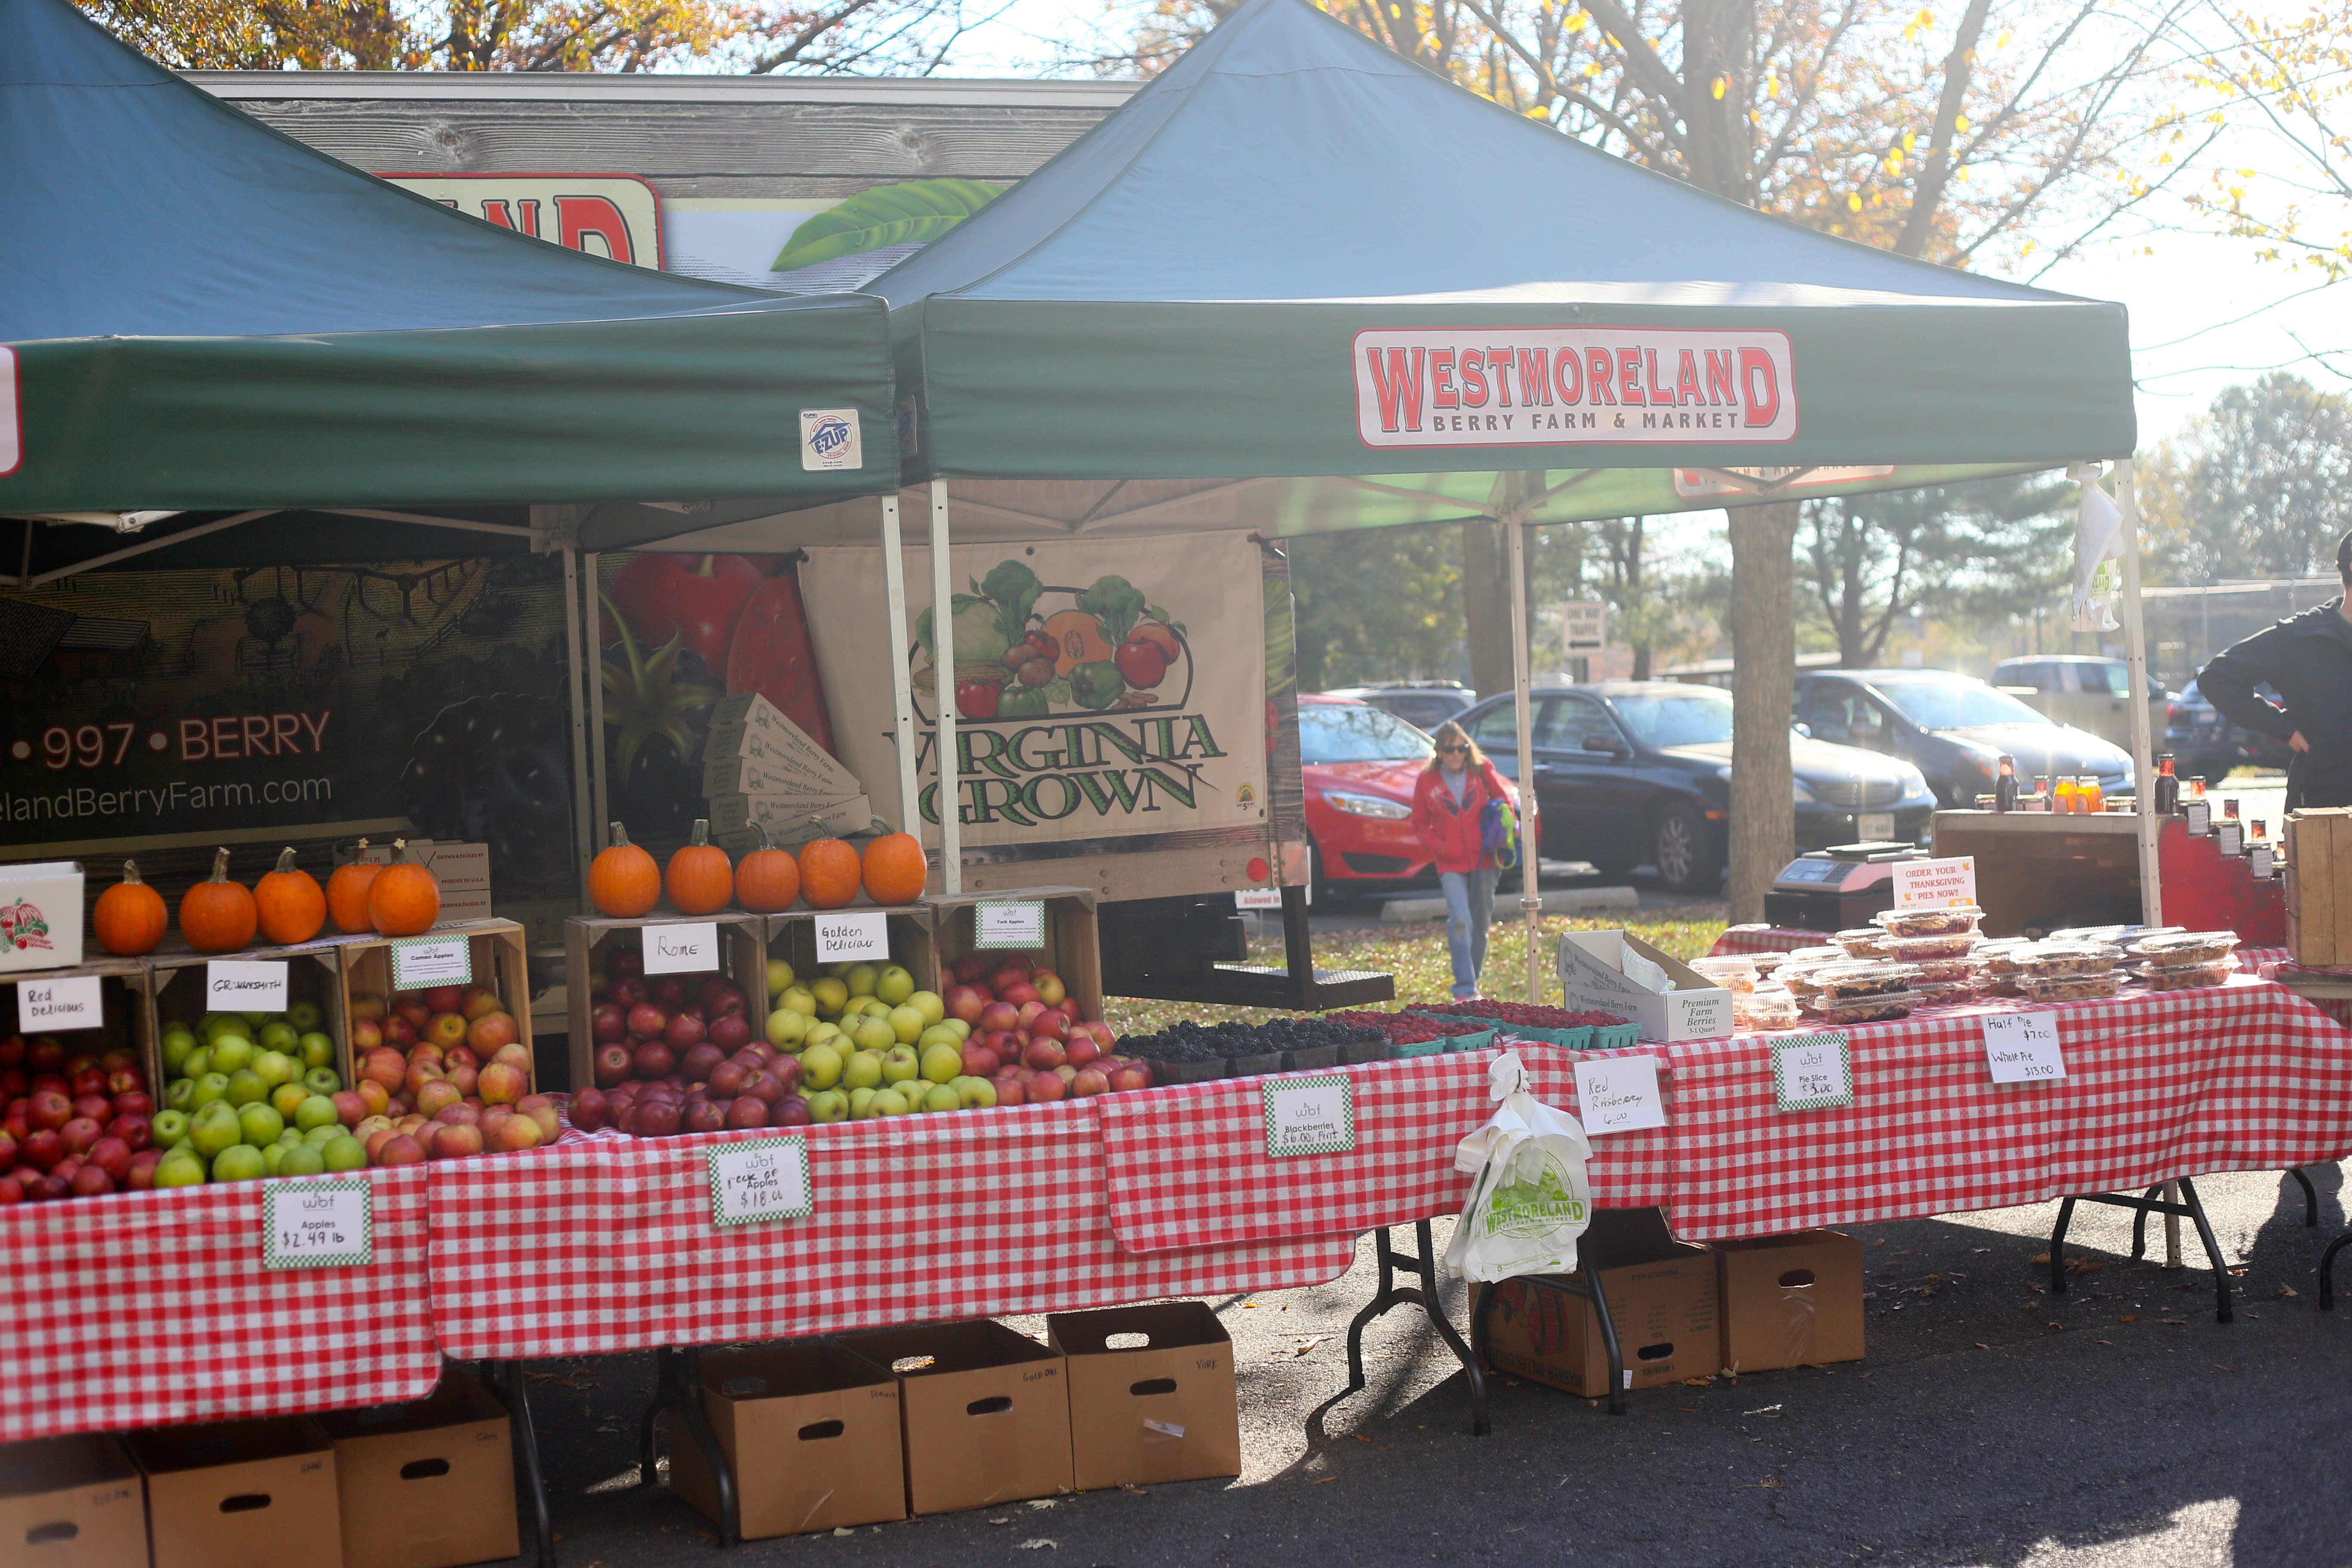 Westmoreland Berry Farm and Market grow the freshest strawberries, blackberries, and make delicious pies.